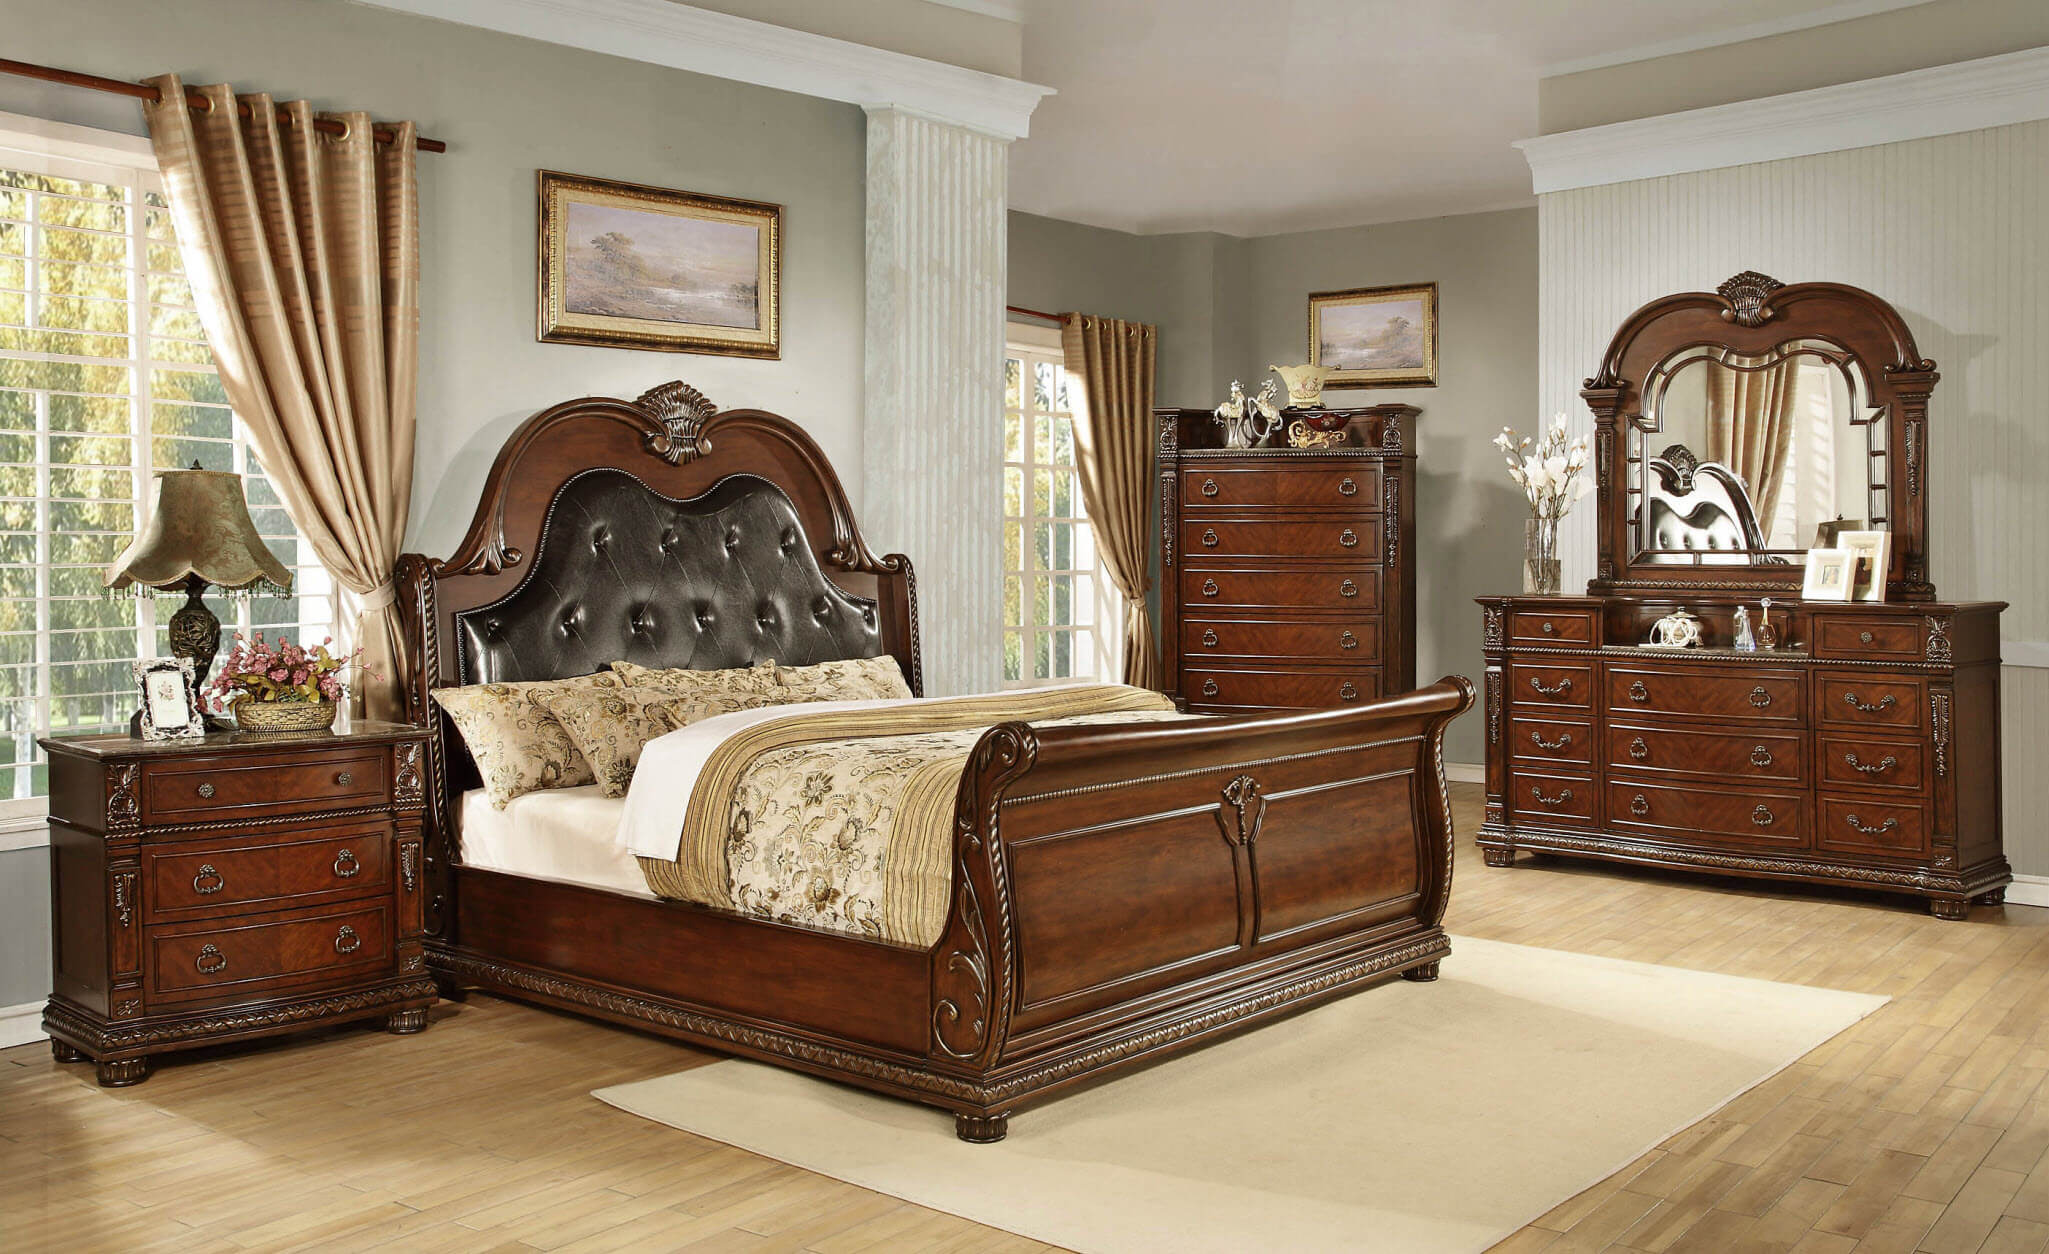 panel wood sets mahogany set with calista bedroom ebony frame designs pilaster rustic collections room bed dark solid configurable